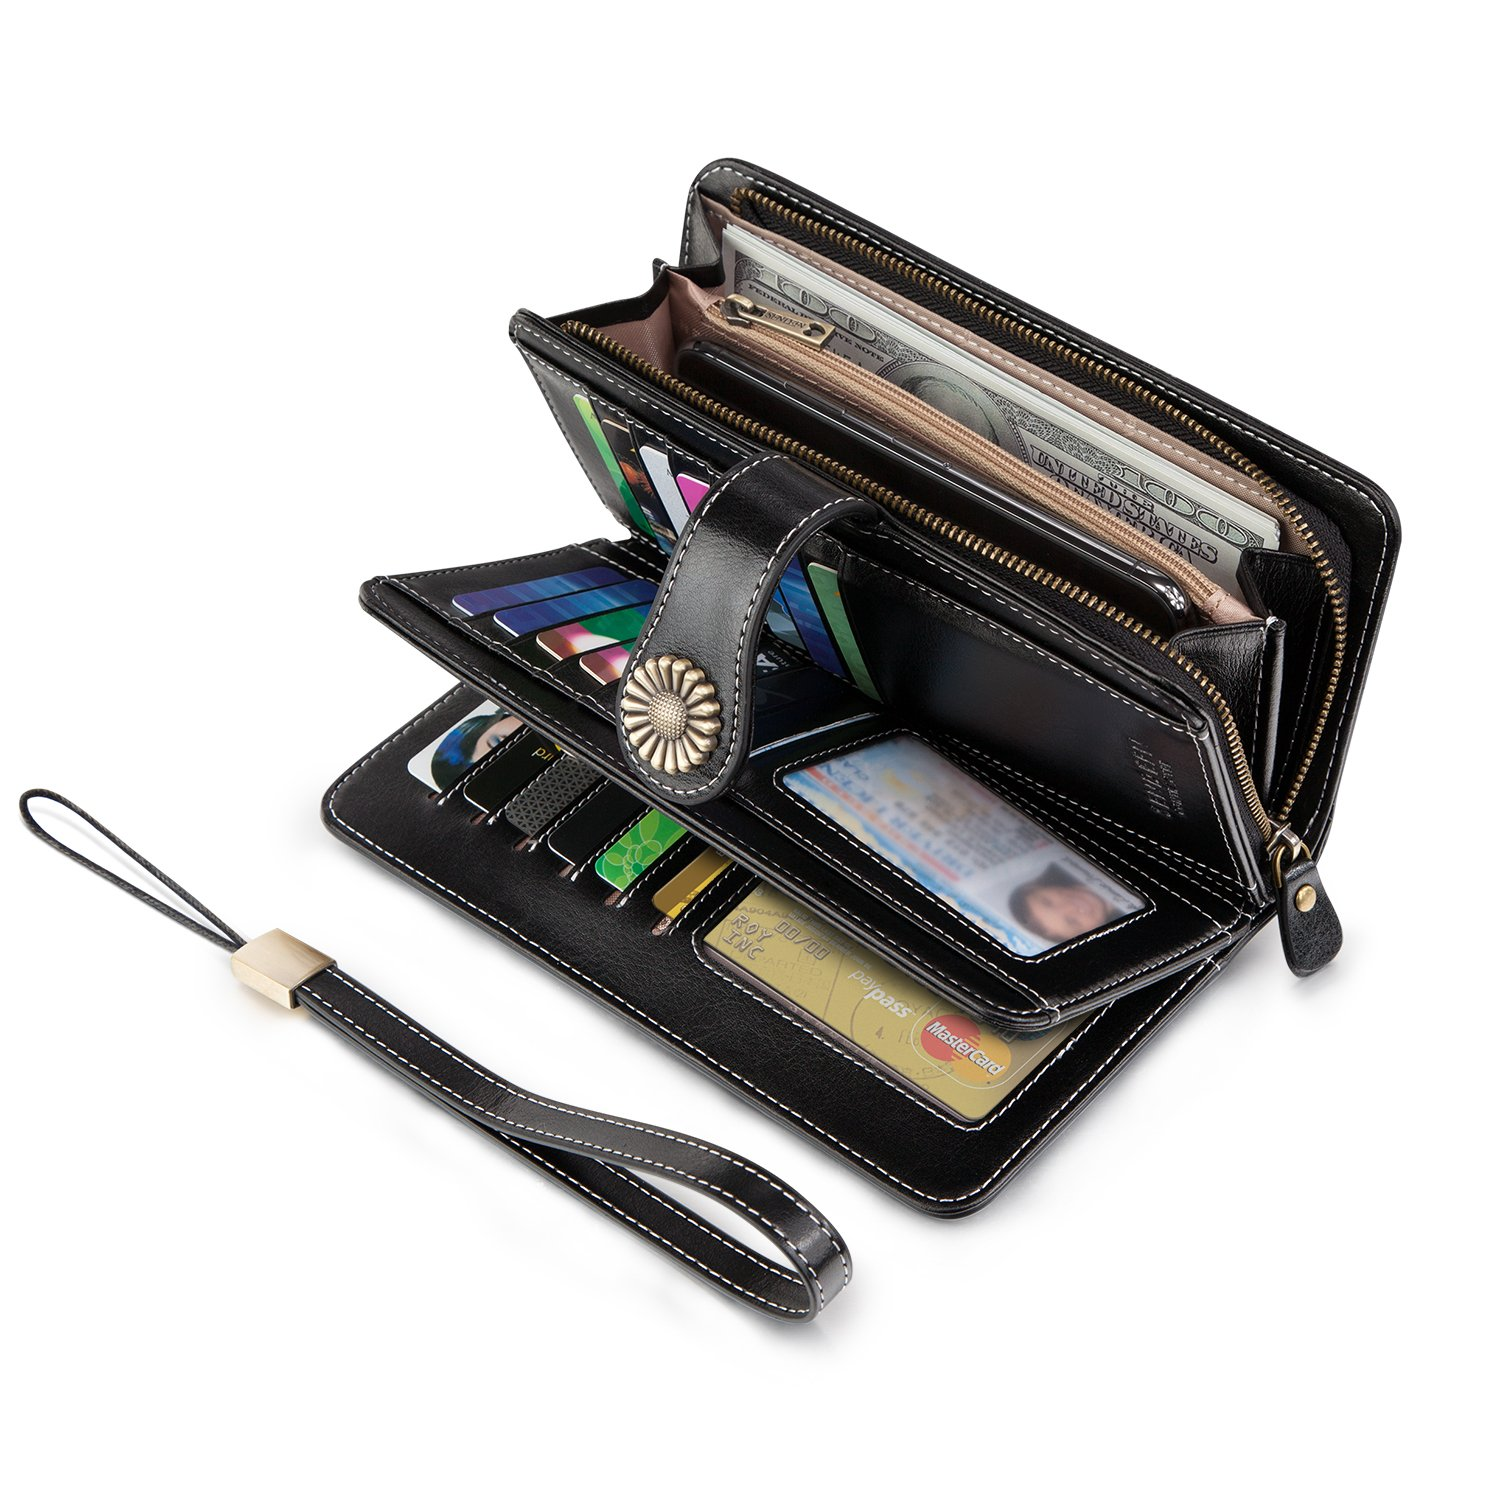 UMODE Vintage Style Genuine Leather Large Capacity Wallet Organizer for Women (Black Color)